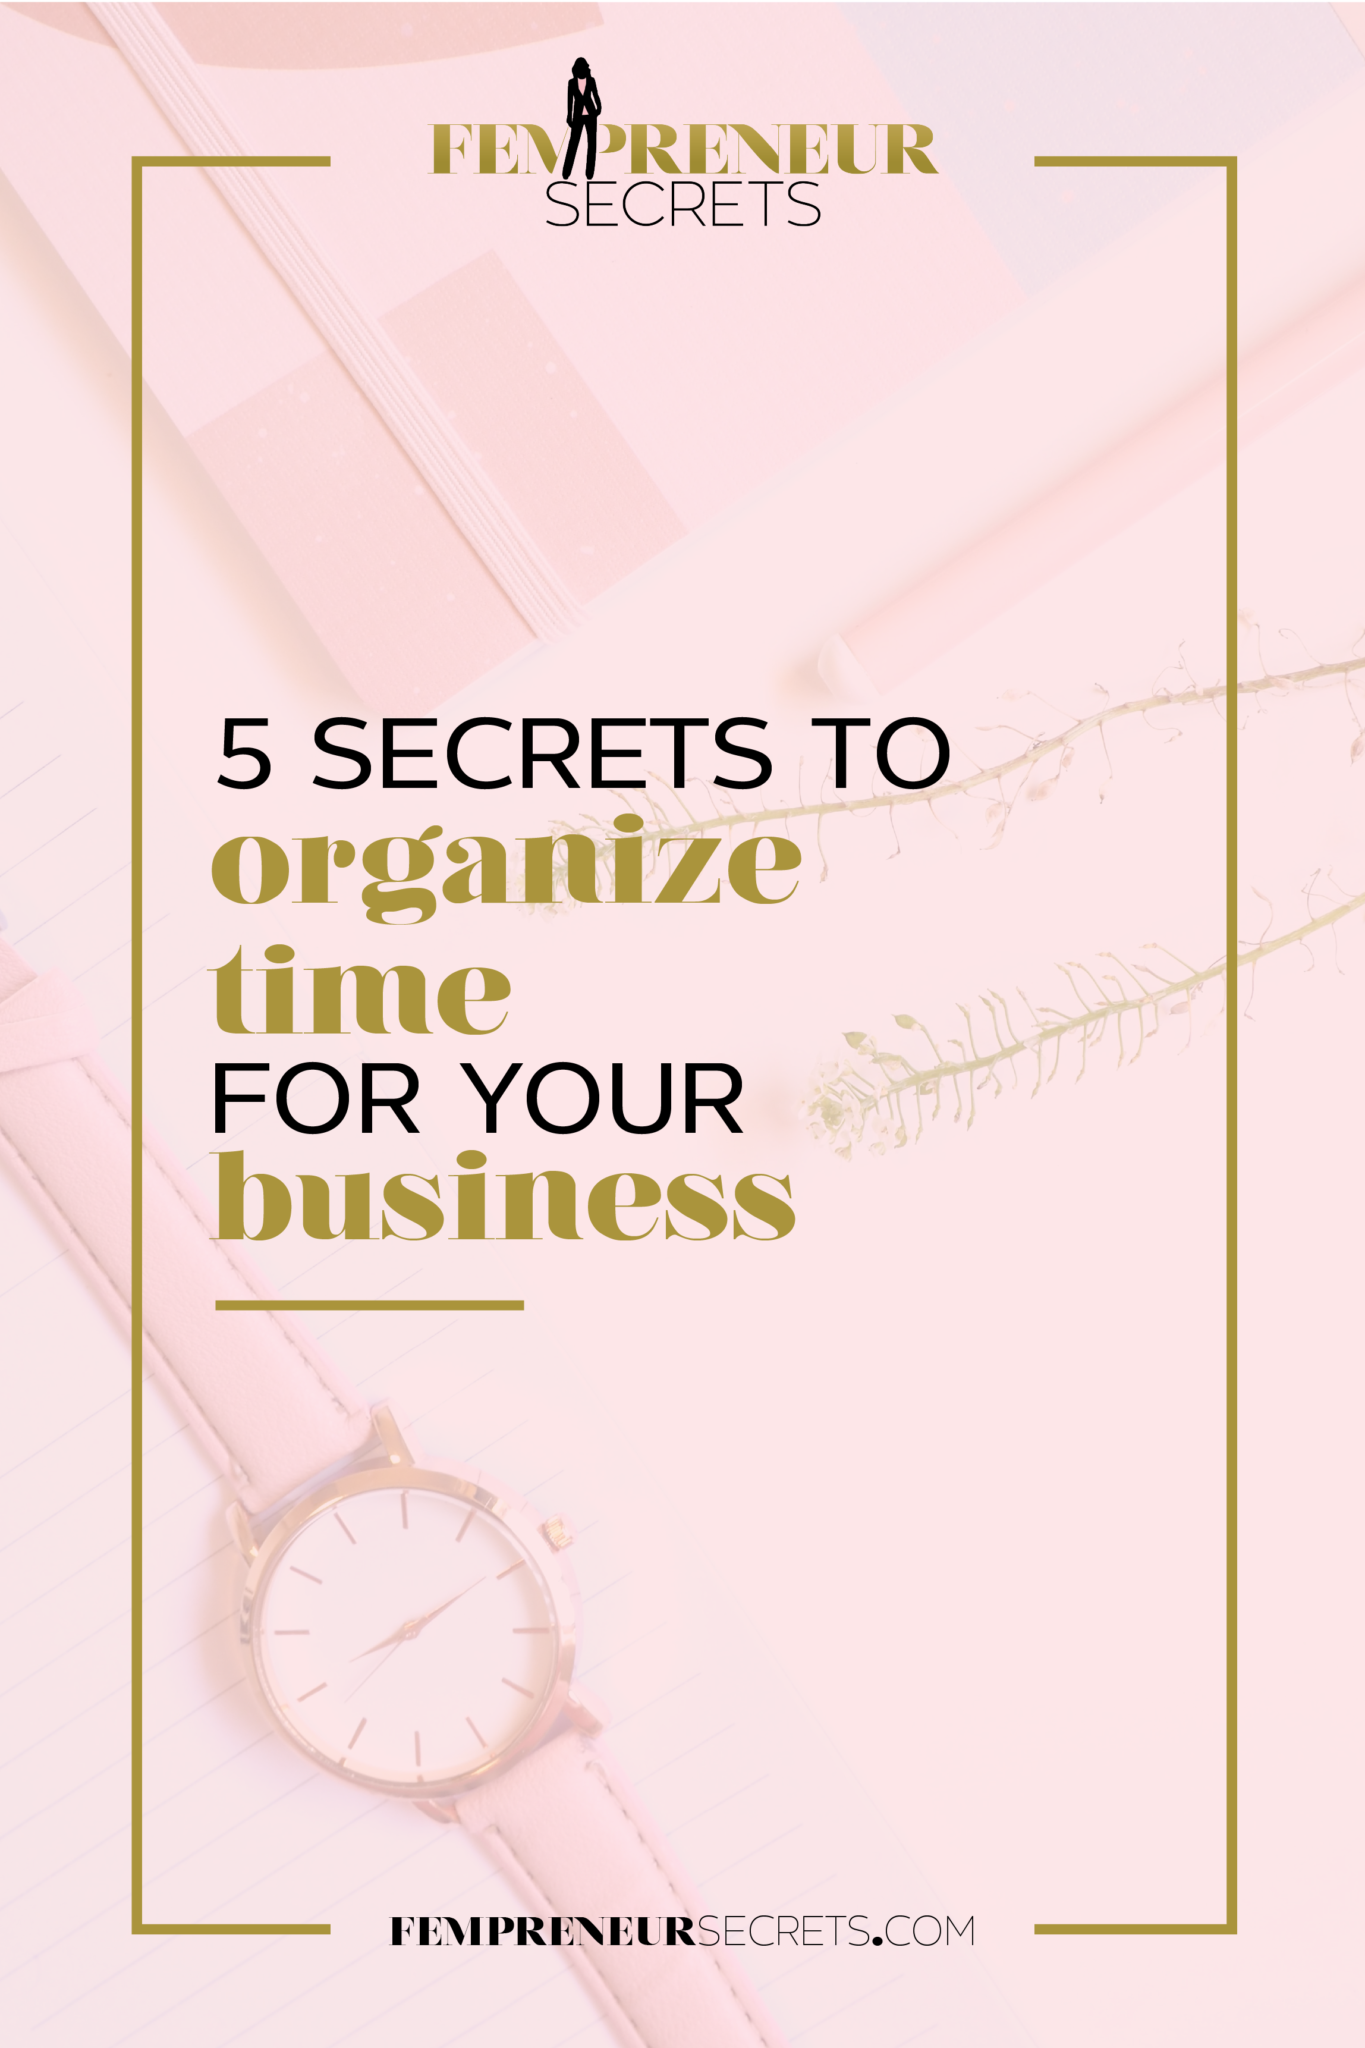 013-5-Secrets-to-Organize-Time-for-Your-Business_Pinterest-1.png